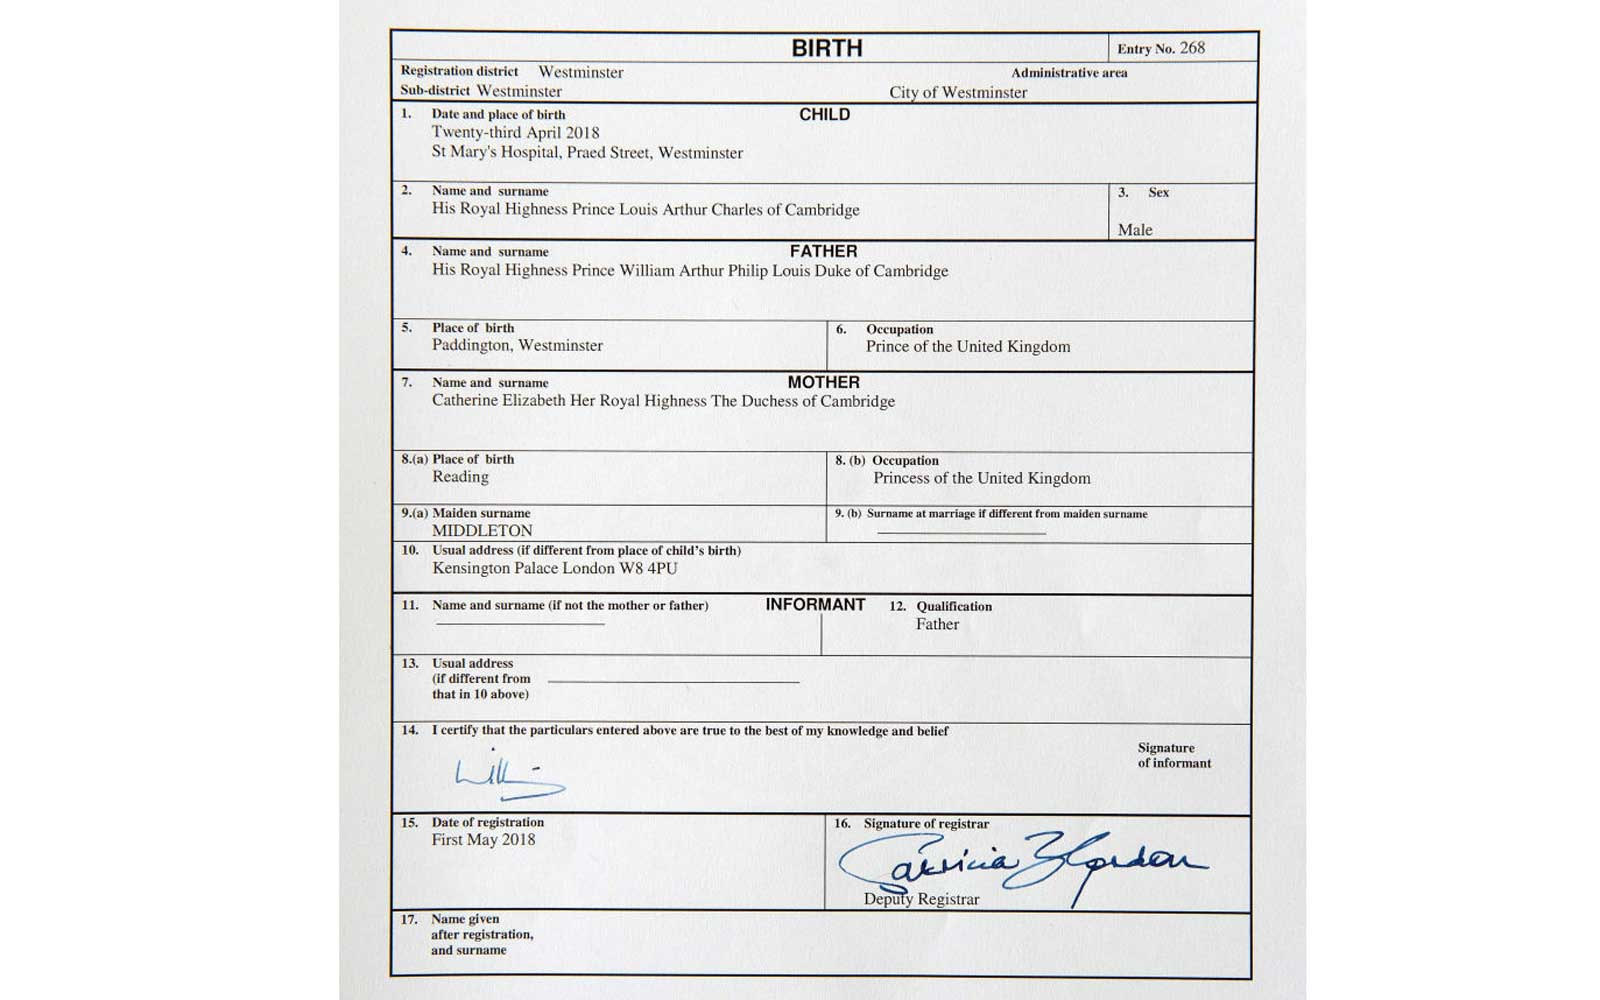 The Duke and Duchess of Cambridge Register The Birth of Their Son Prince Louis Arthur Charles of Cambridge